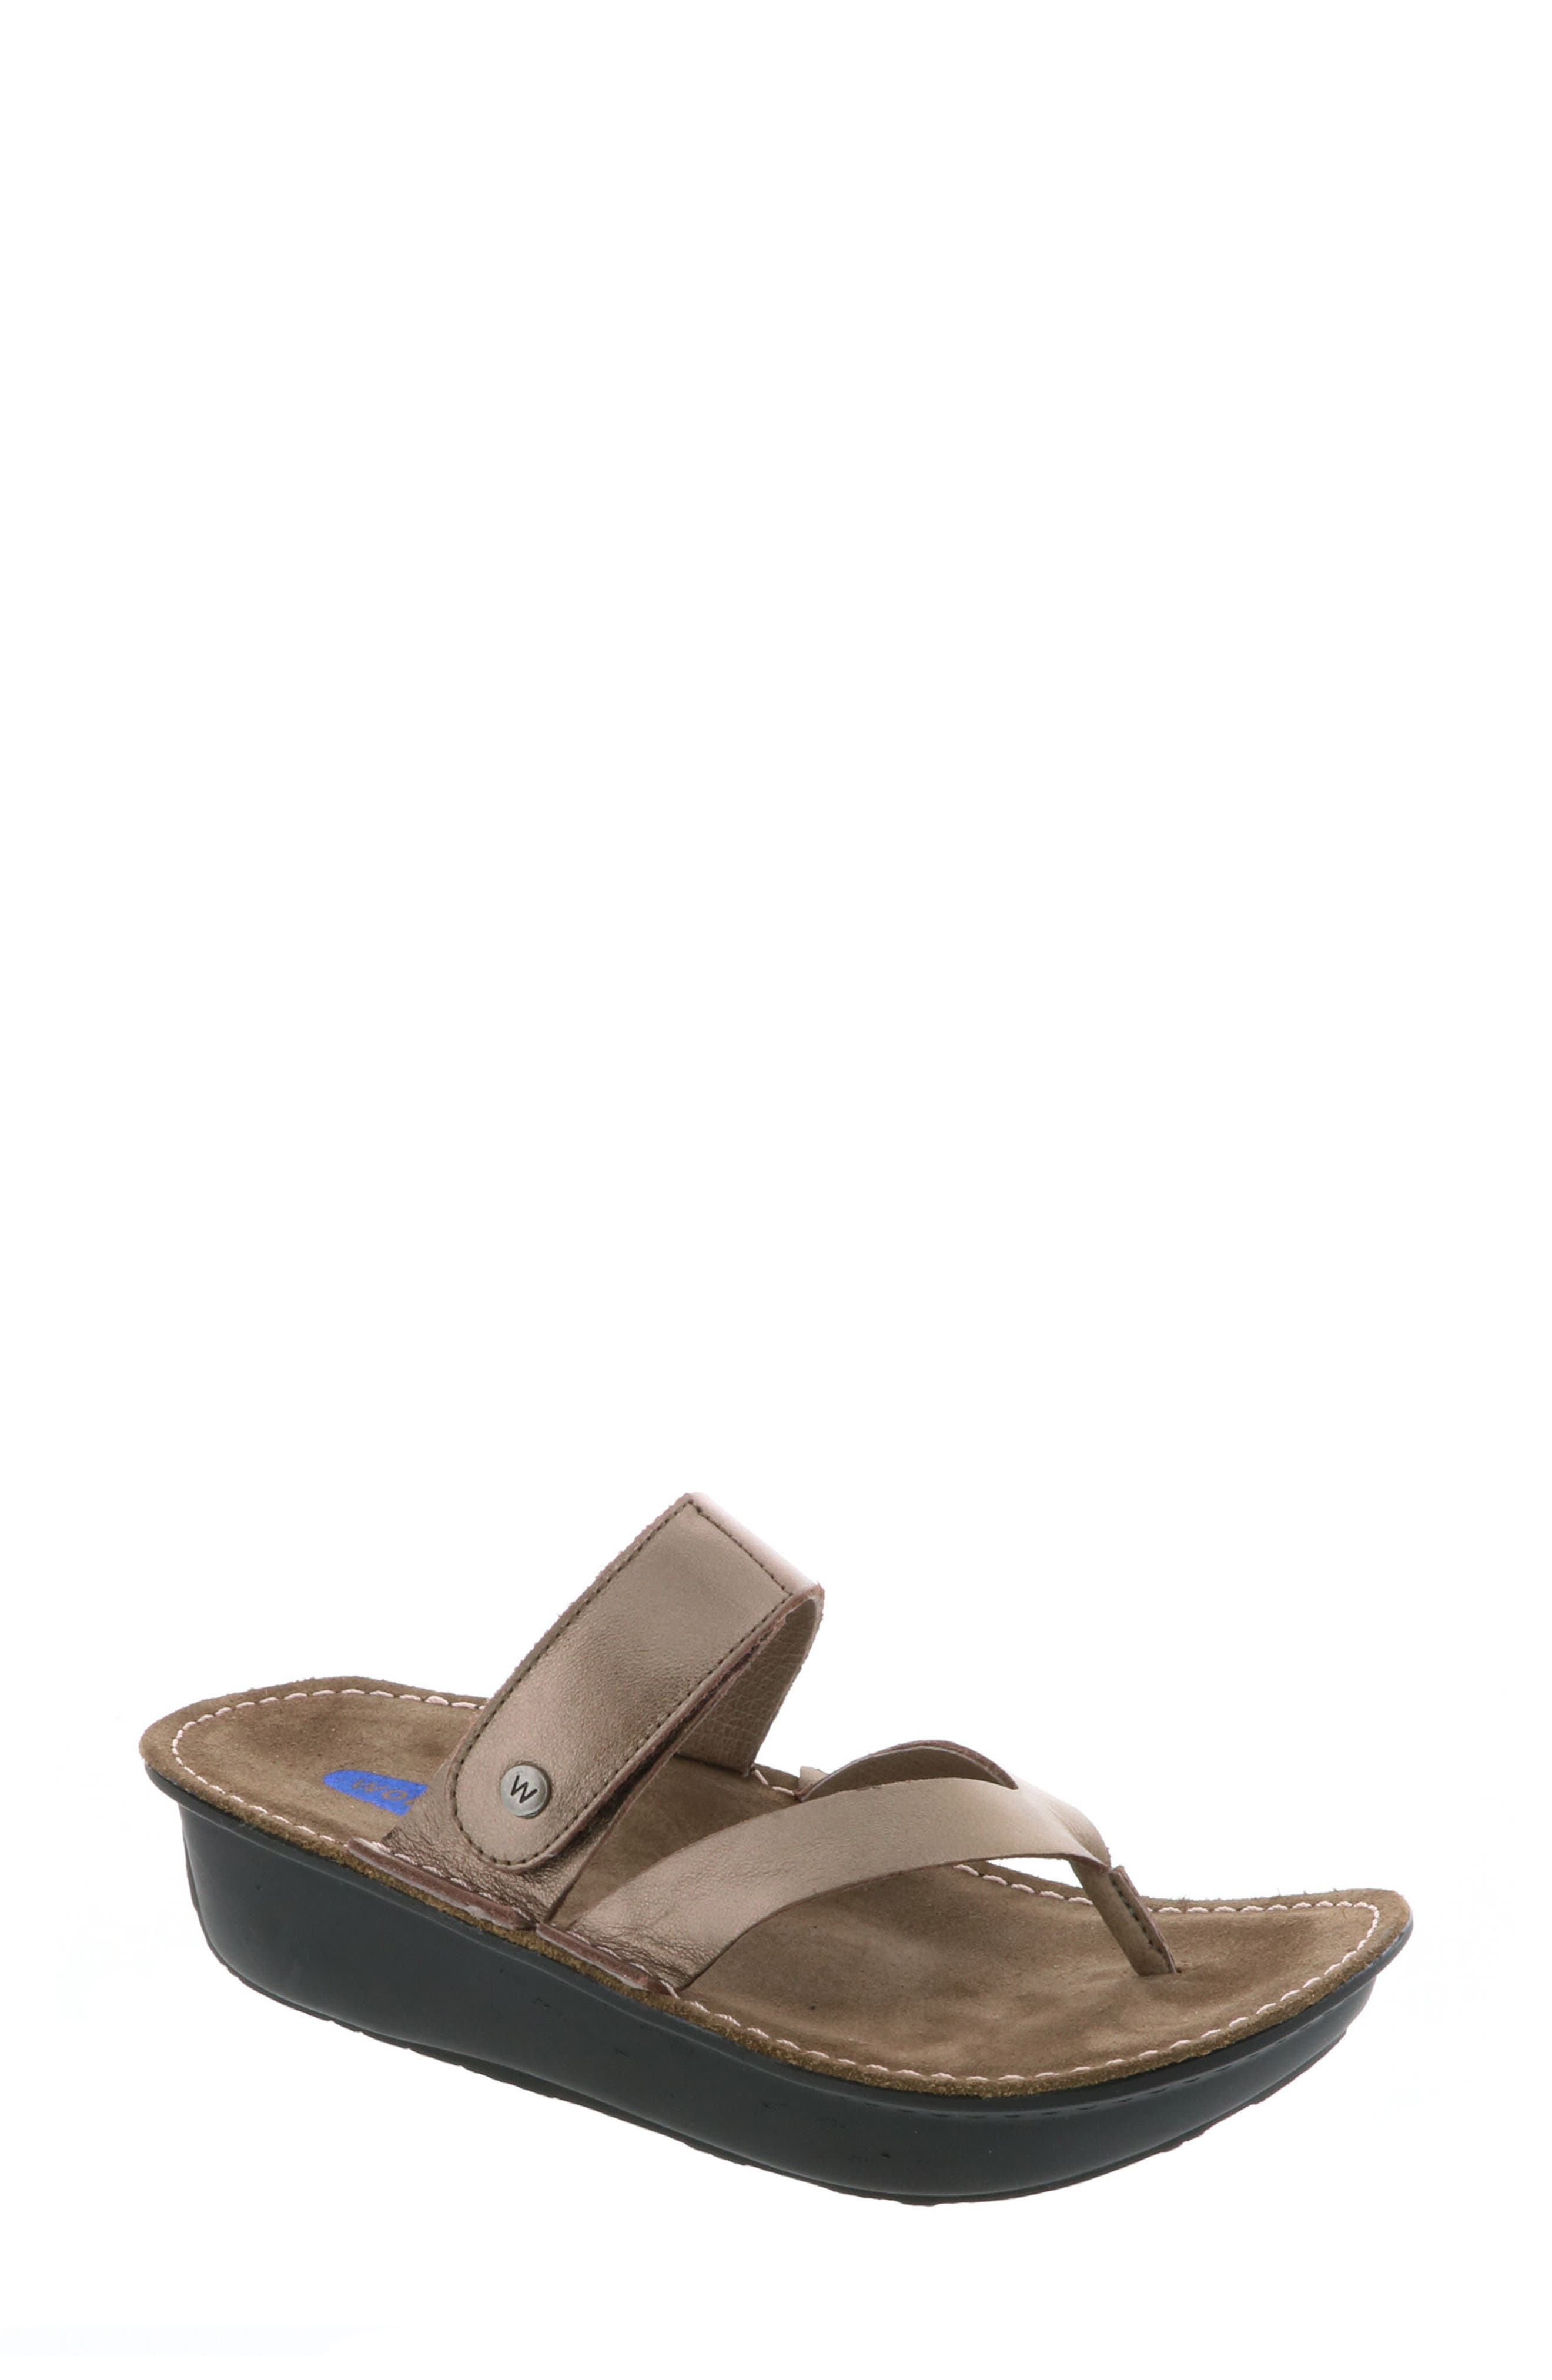 Tahiti Platform Sandal,                             Main thumbnail 1, color,                             BRONZE METALLIC